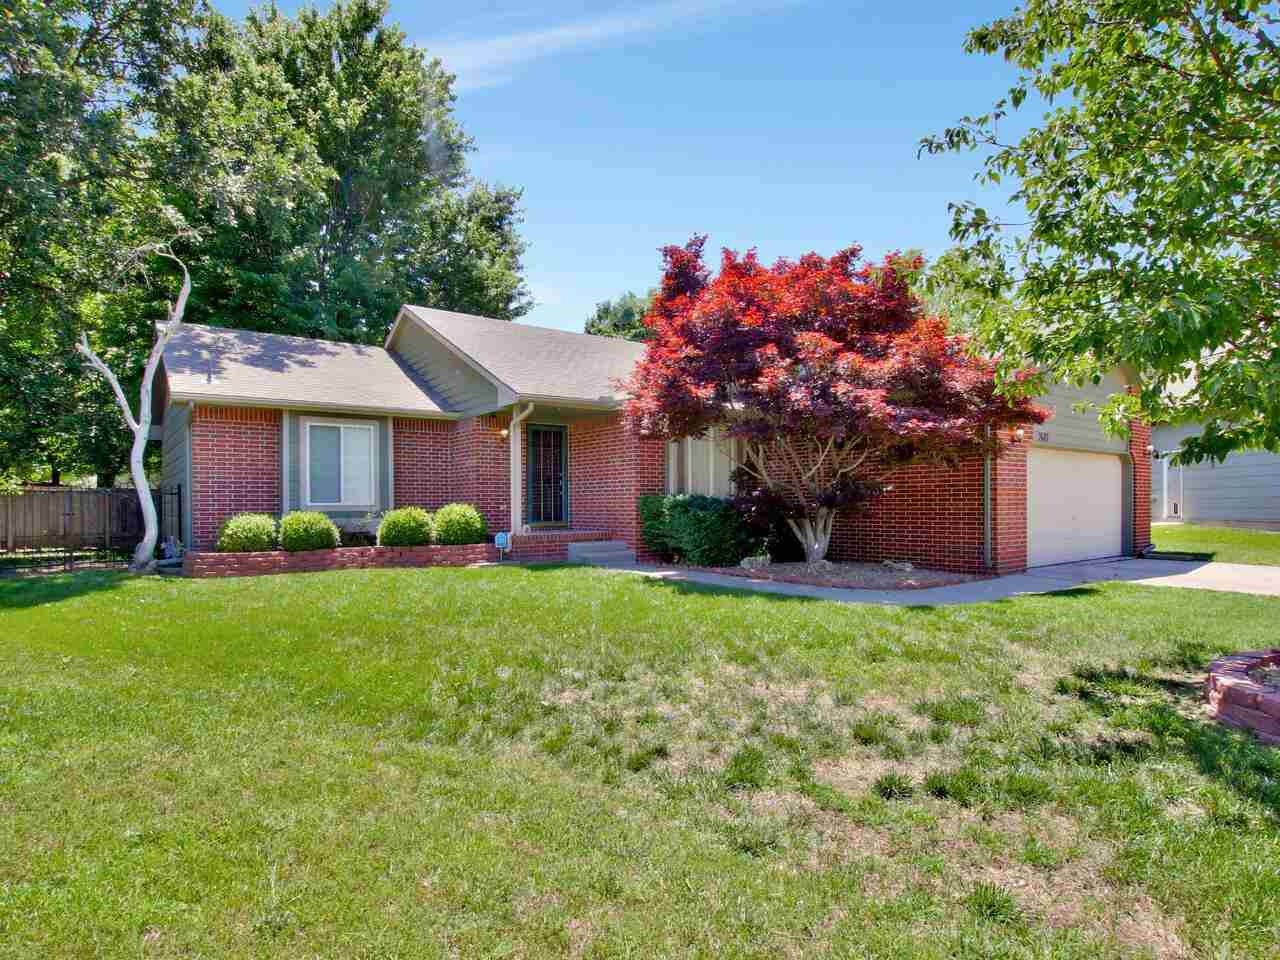 Beautiful home with fenced back yard in. Plenty of room upstairs and downstairs for entertaining or